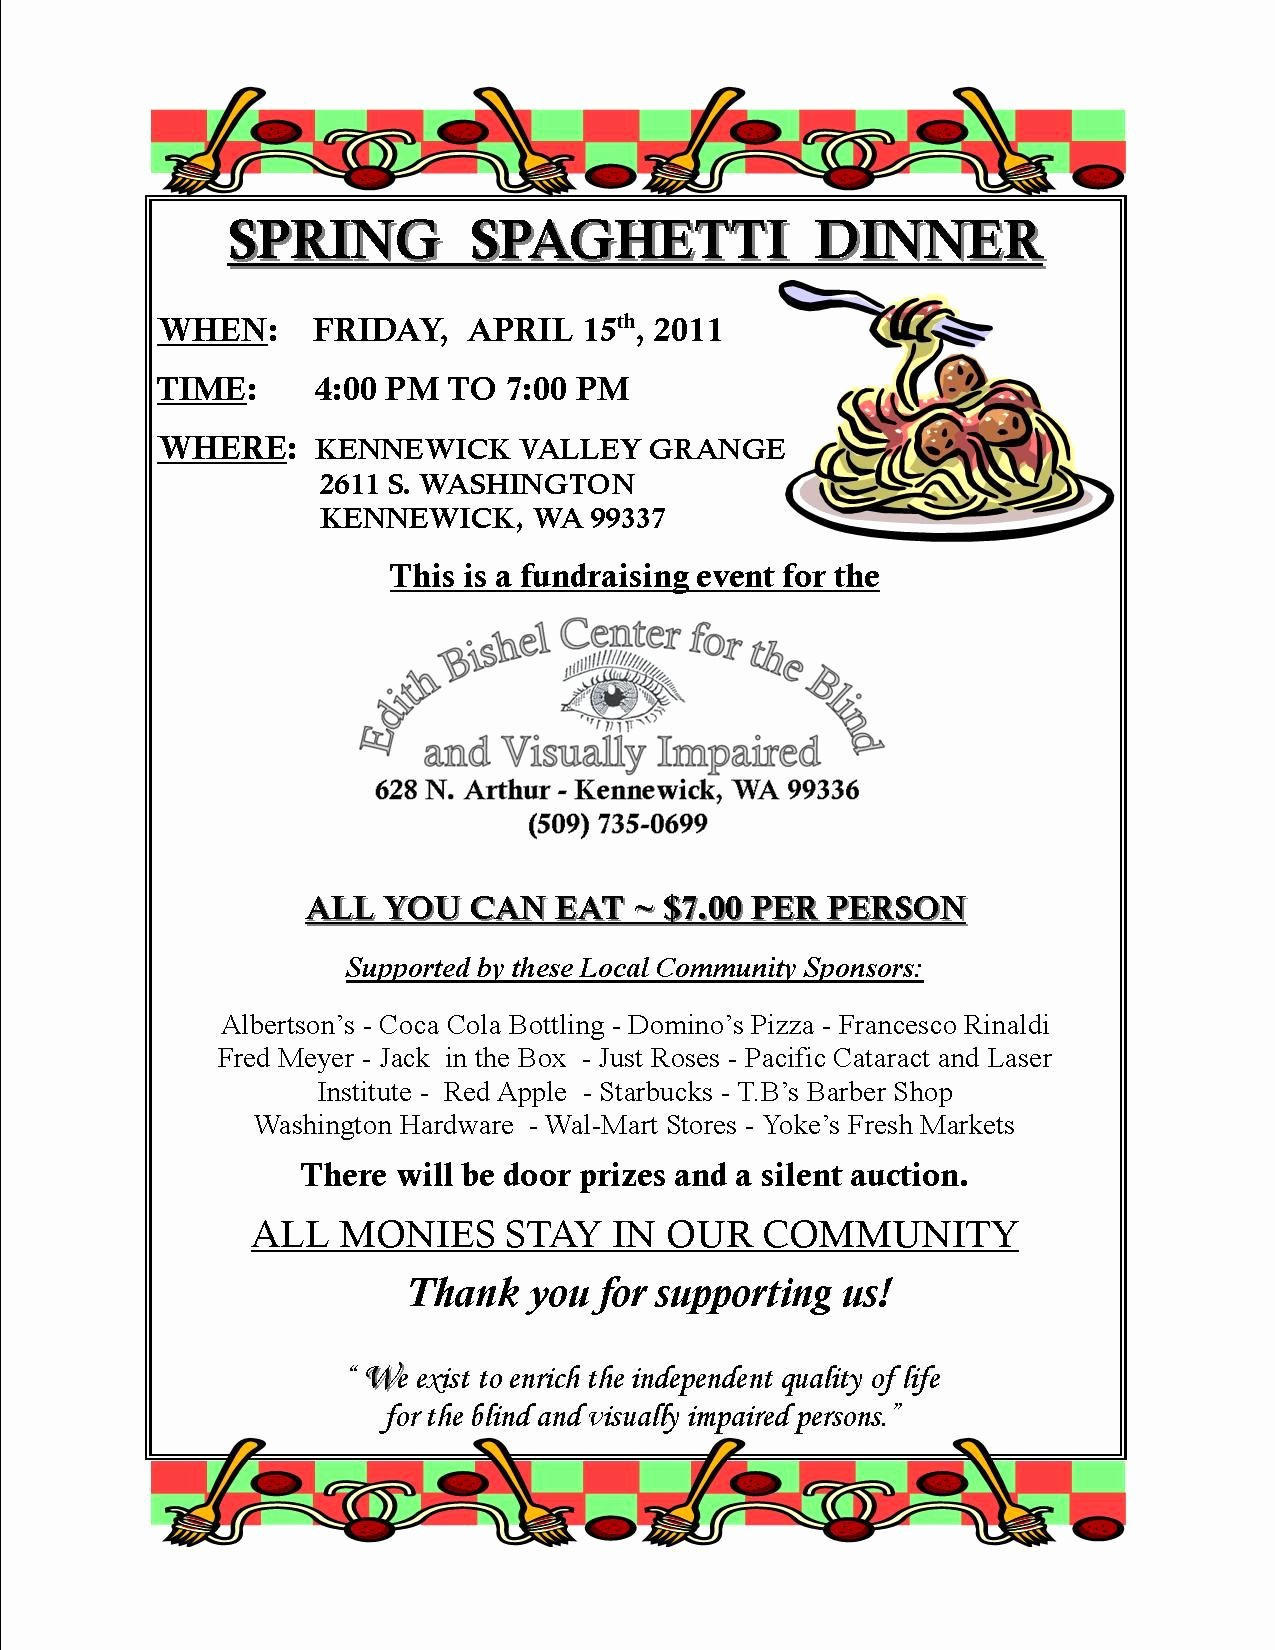 Spaghetti Dinner Fundraiser Flyer Template Fresh Dinner Fundraiser April 15 2011 Spring Spaghetti Dinner Fundraiser